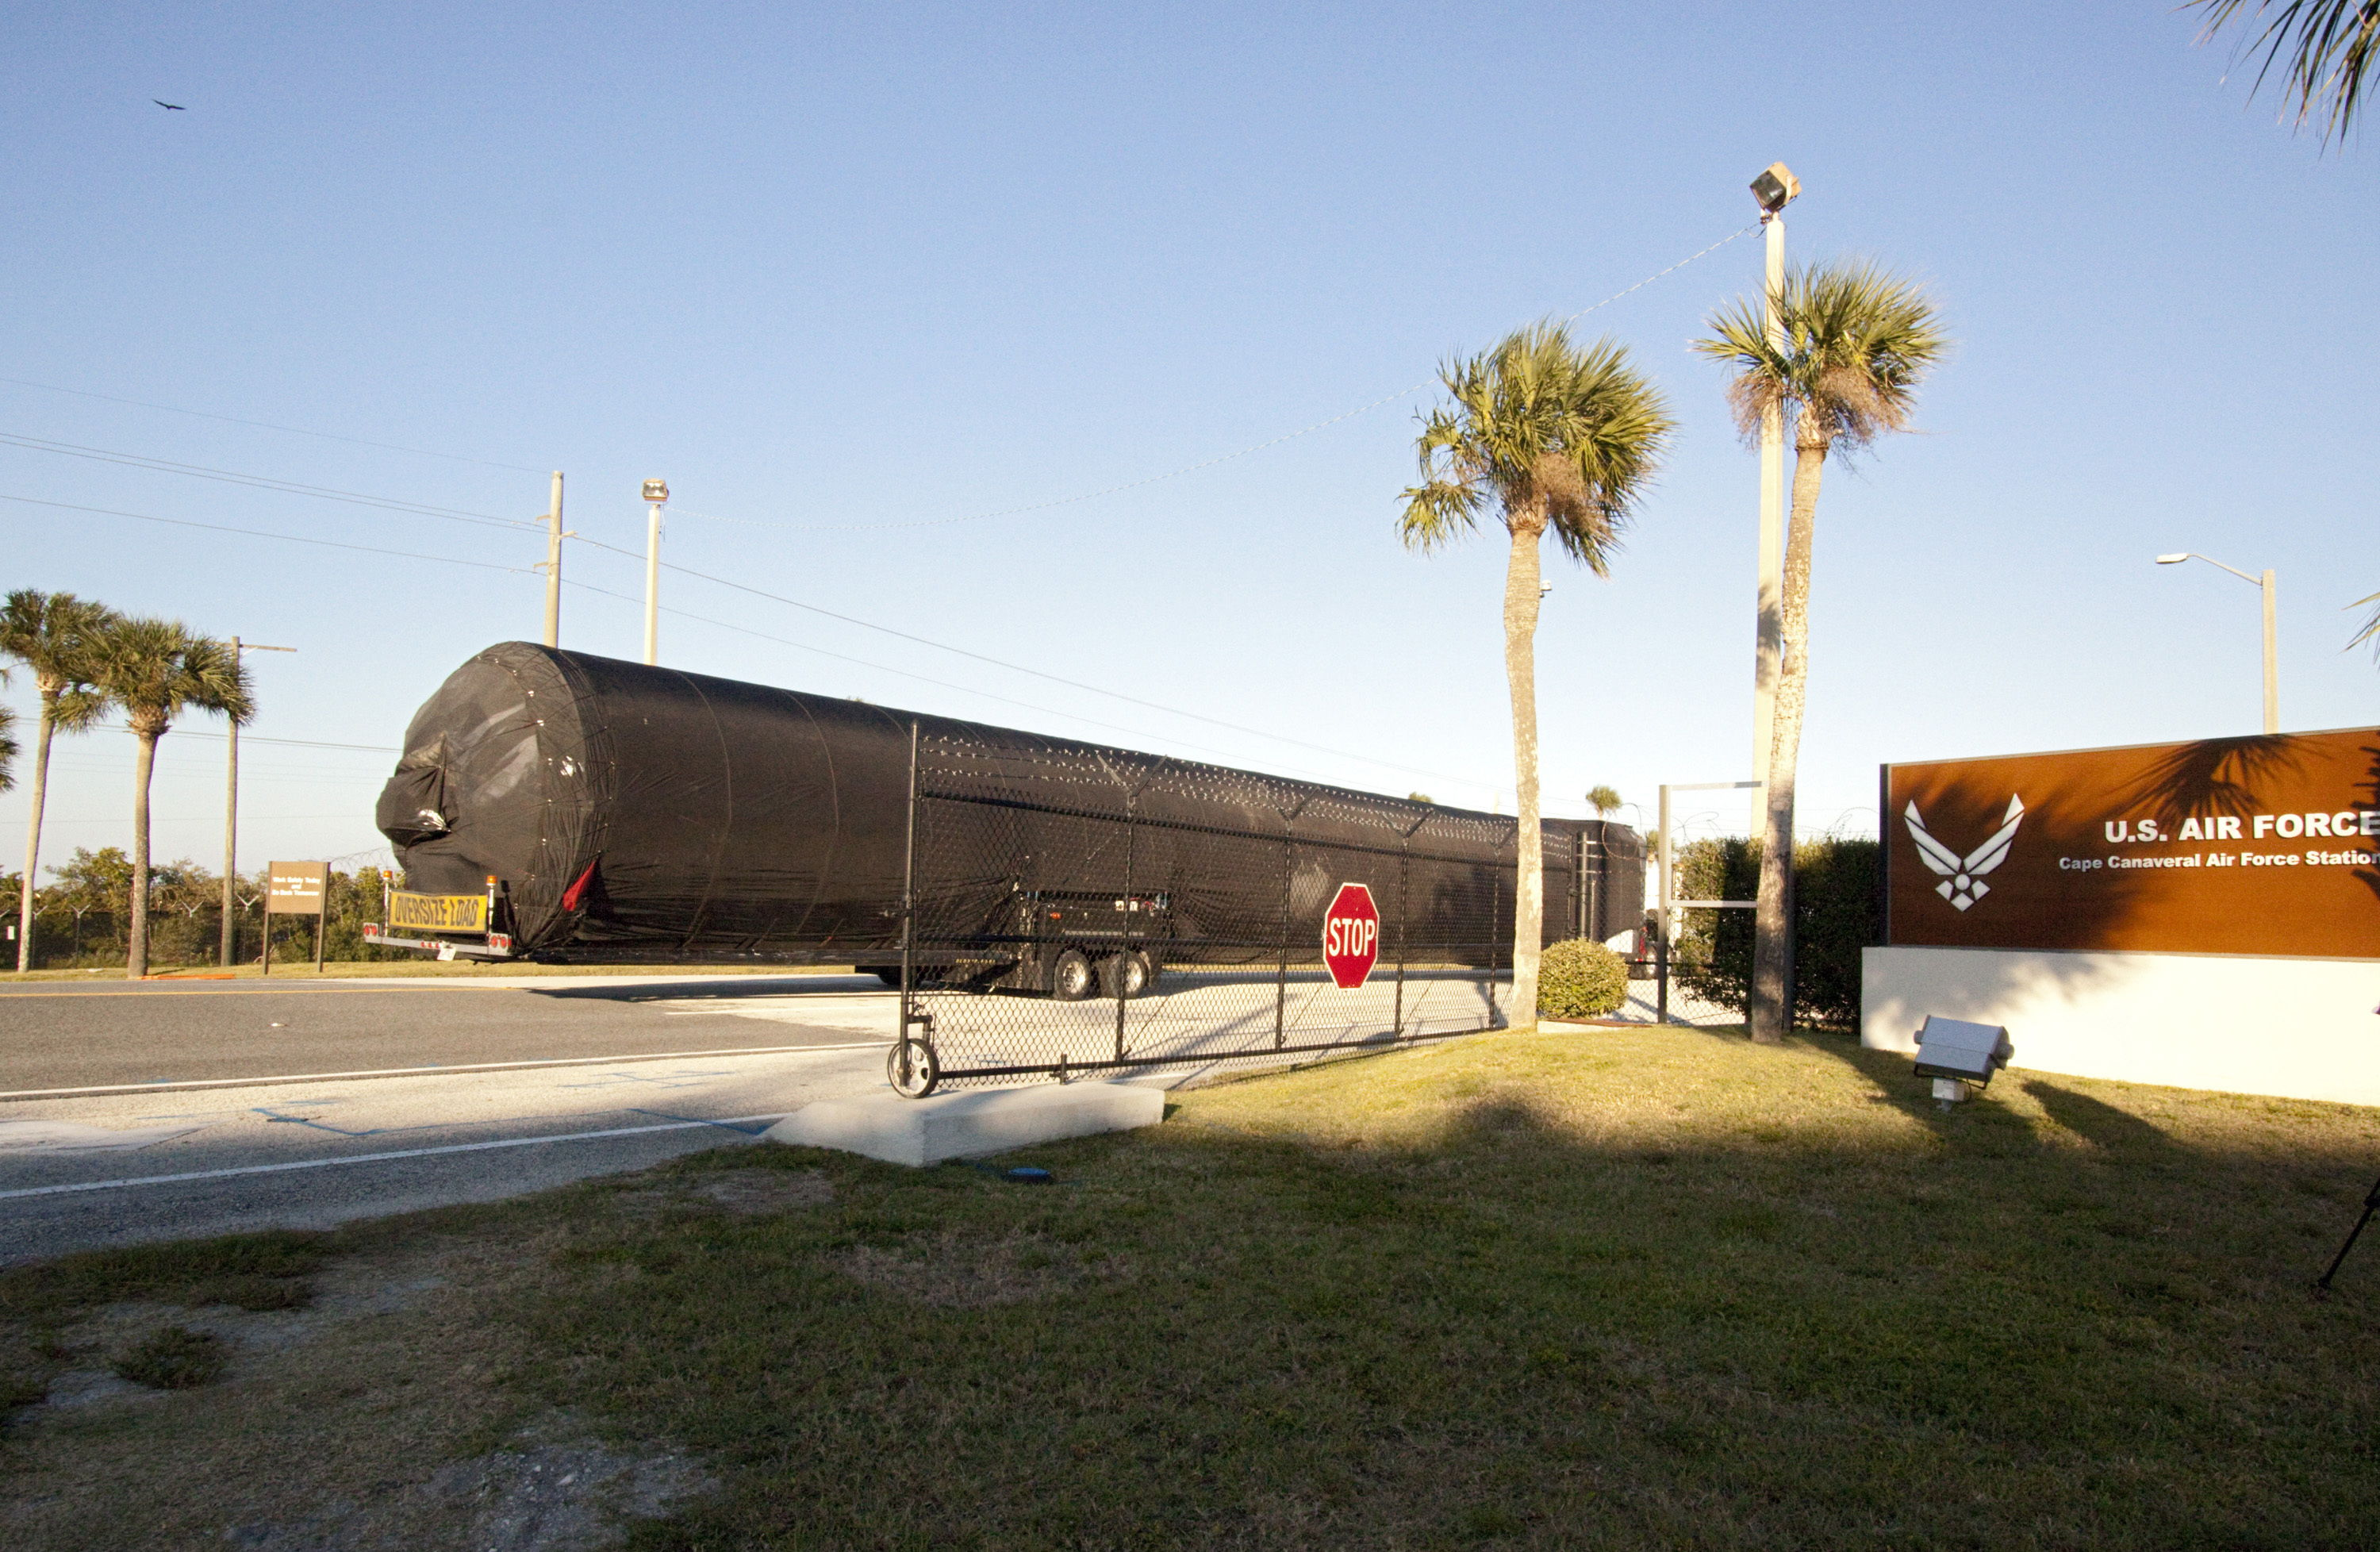 SpaceX Falcon 9 First Stage Arrives at Cape Canaveral